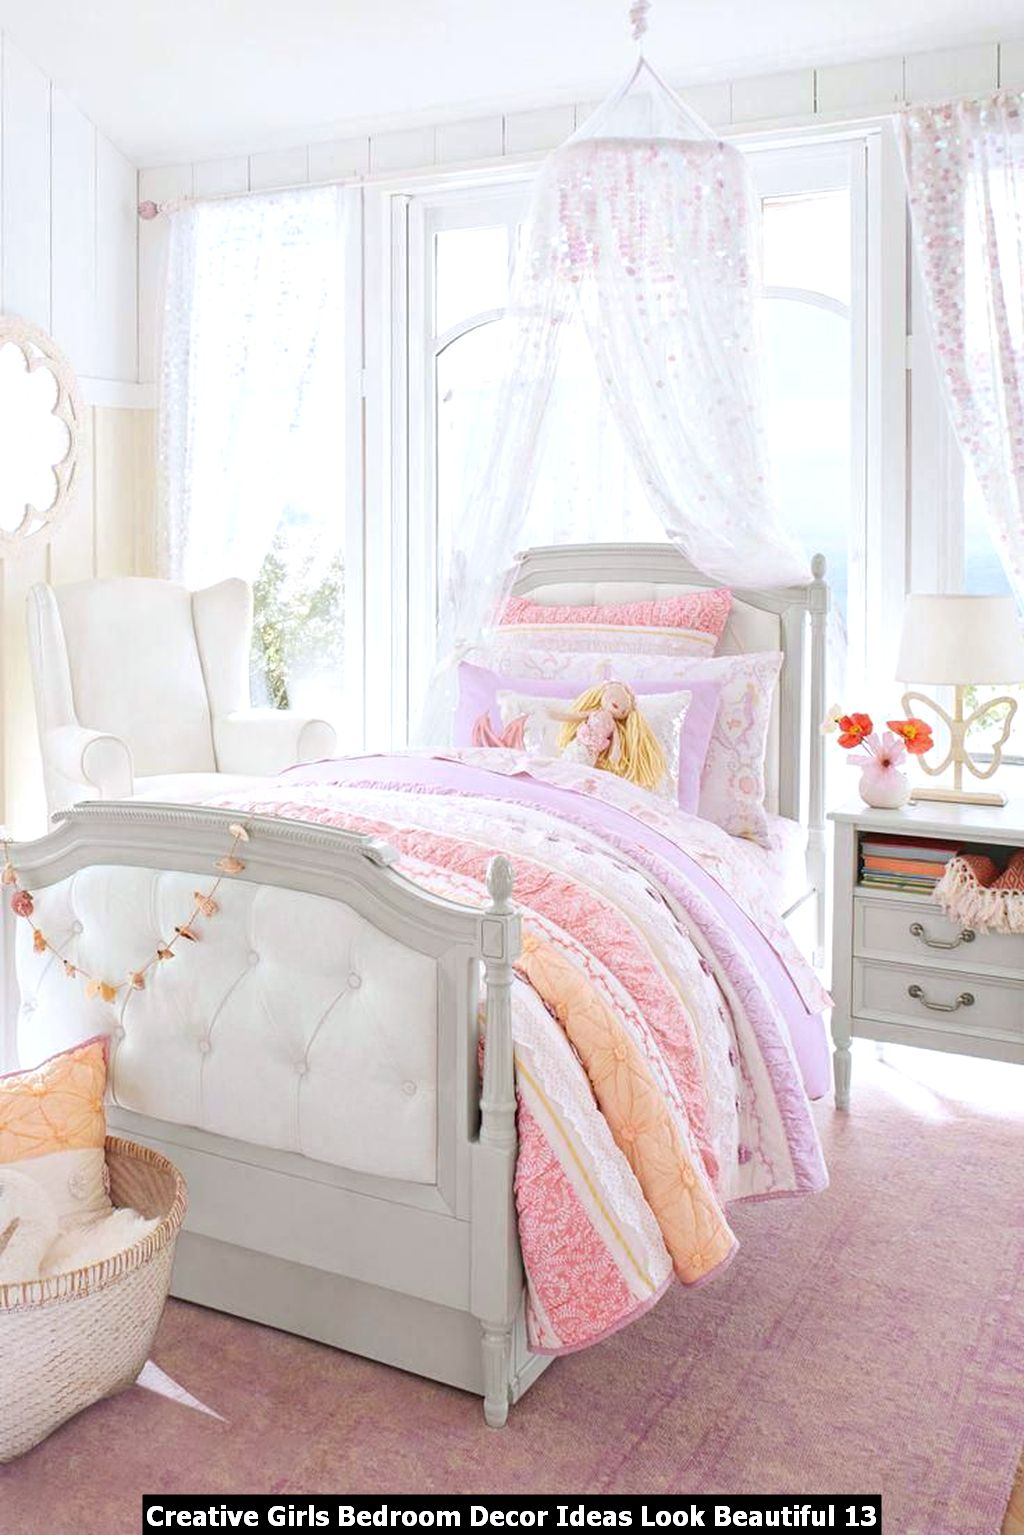 Creative Girls Bedroom Decor Ideas Look Beautiful 13